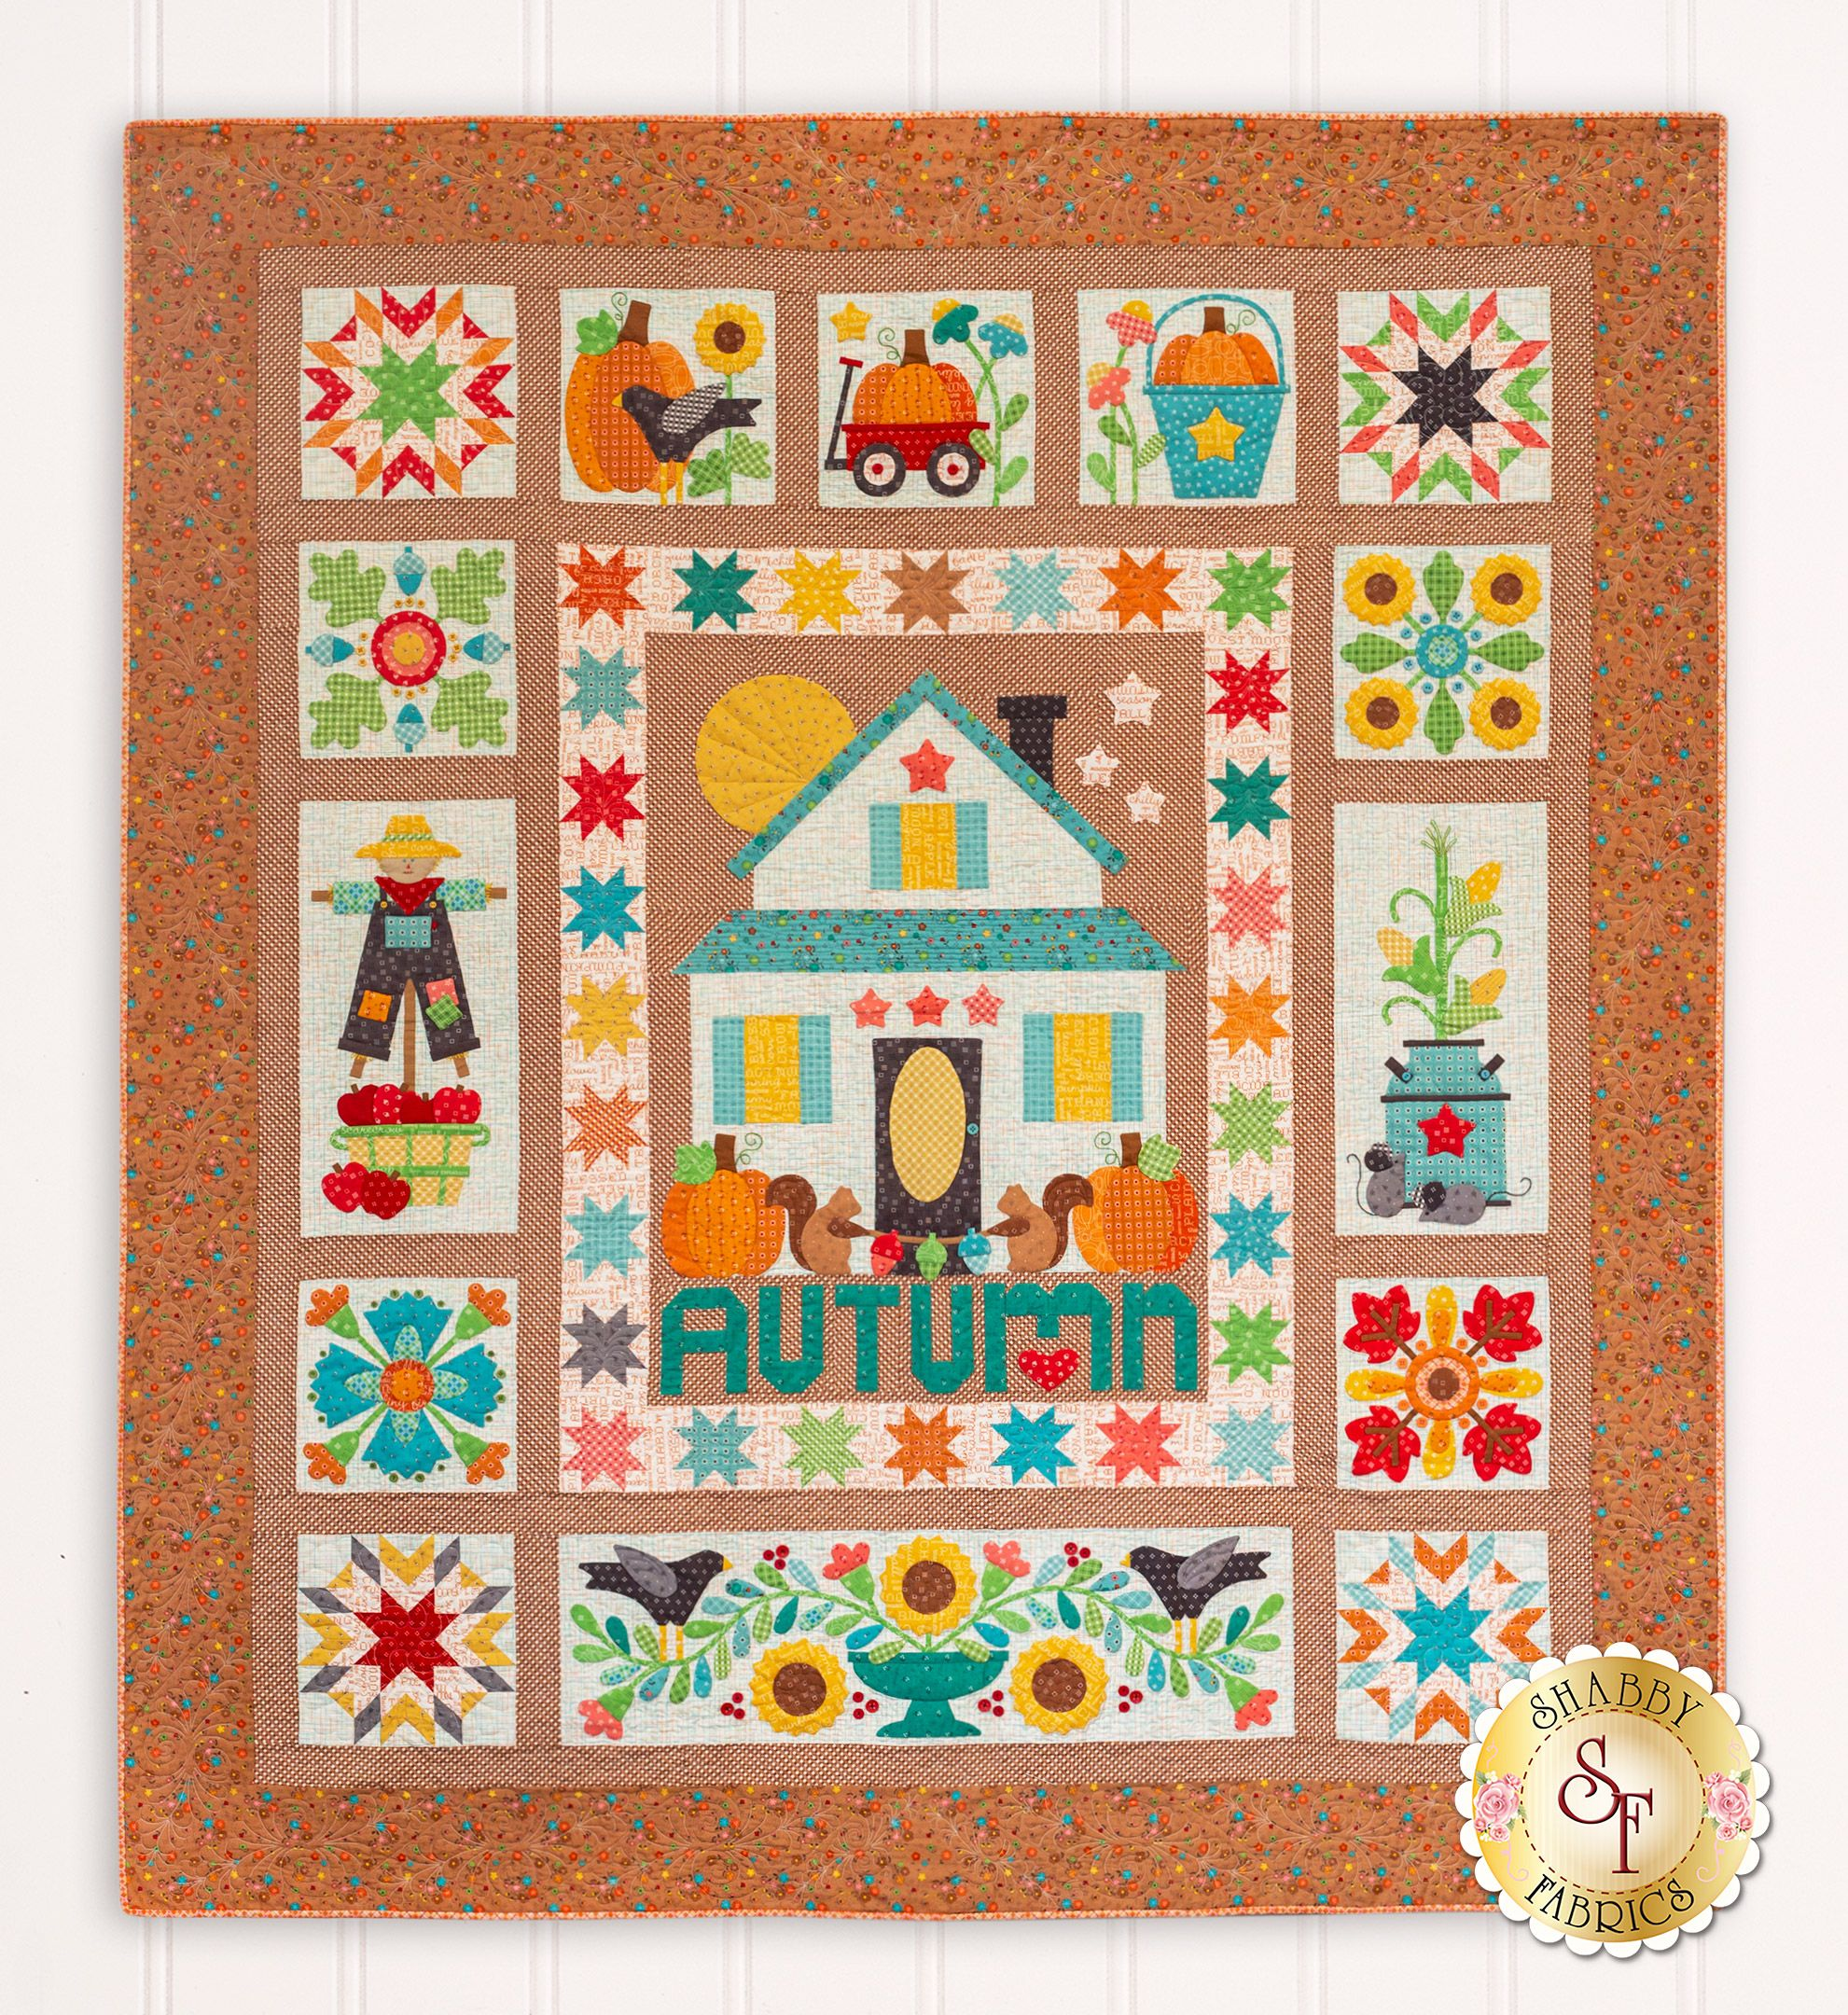 Autumn Love Quilt Kit This Adorable Quilt By Lori Holt Is Autumn Perfection From The Colors To The Sweet Details The Quaint Cou Quilts Quilt Kit Fall Quilts